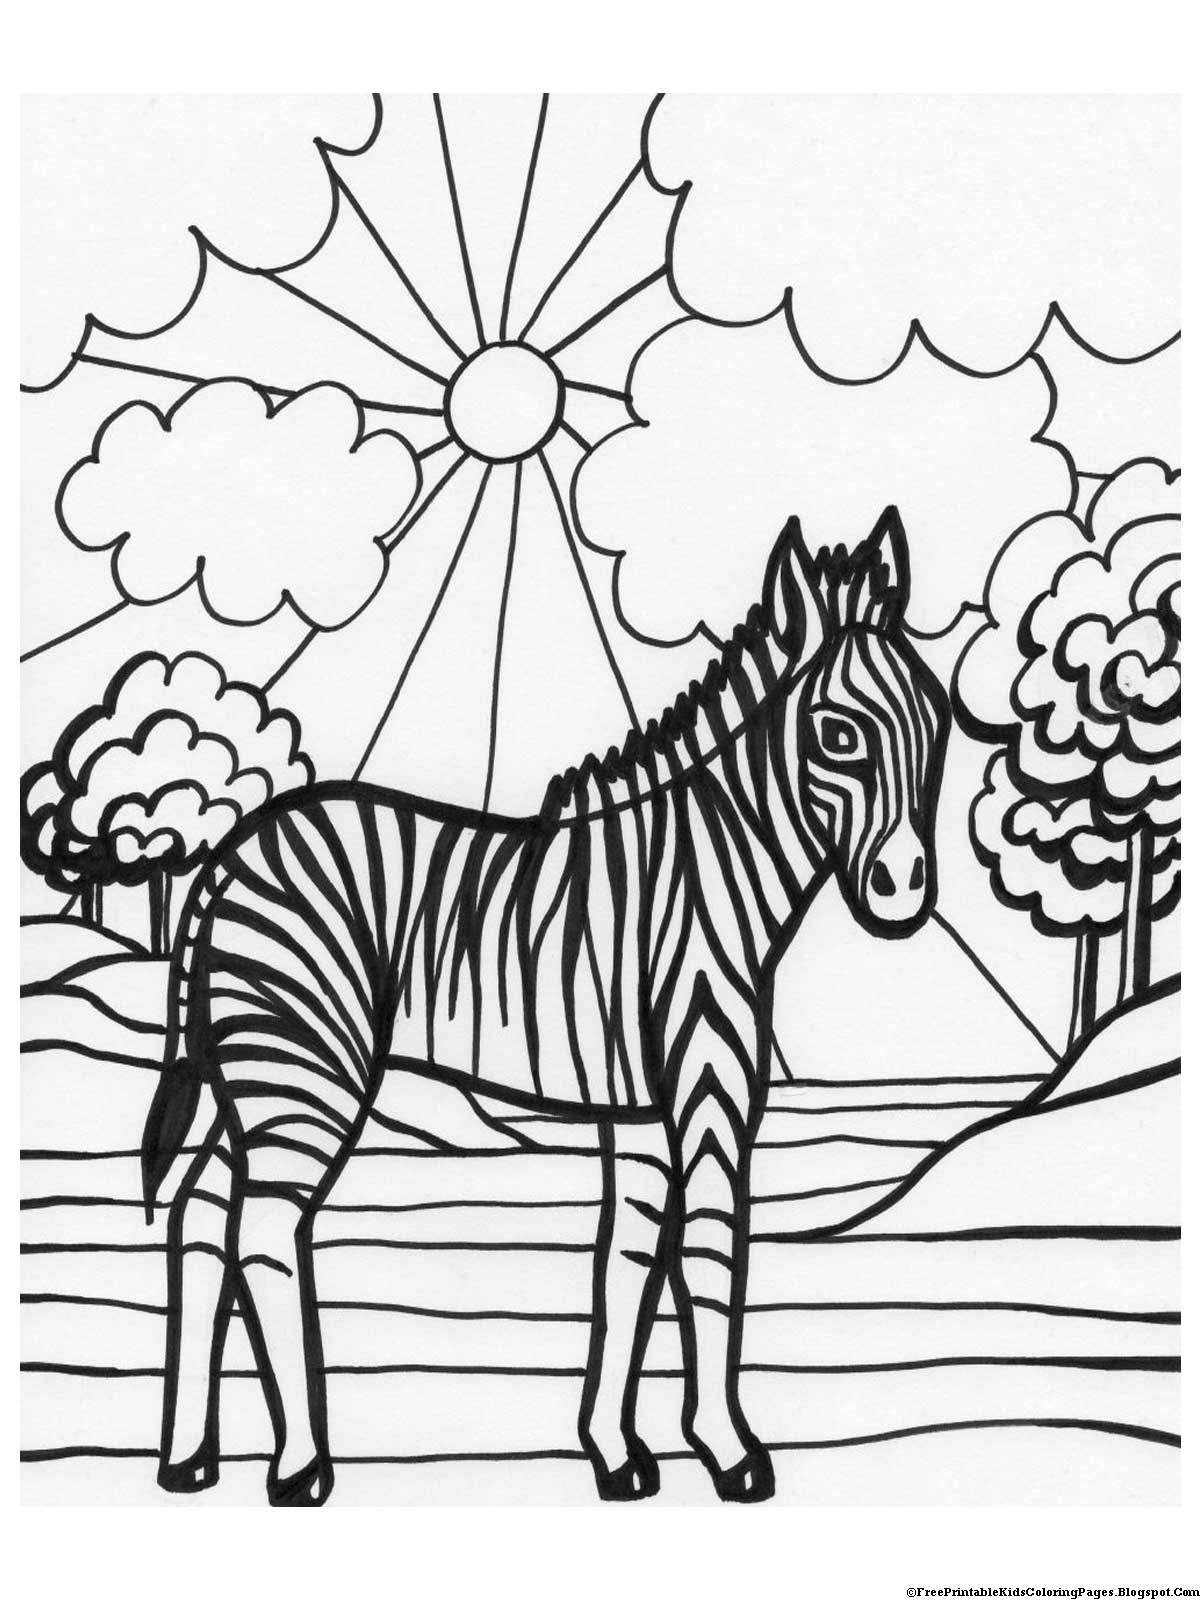 coloring zebra pictures free zebra coloring pages coloring pictures zebra 1 1